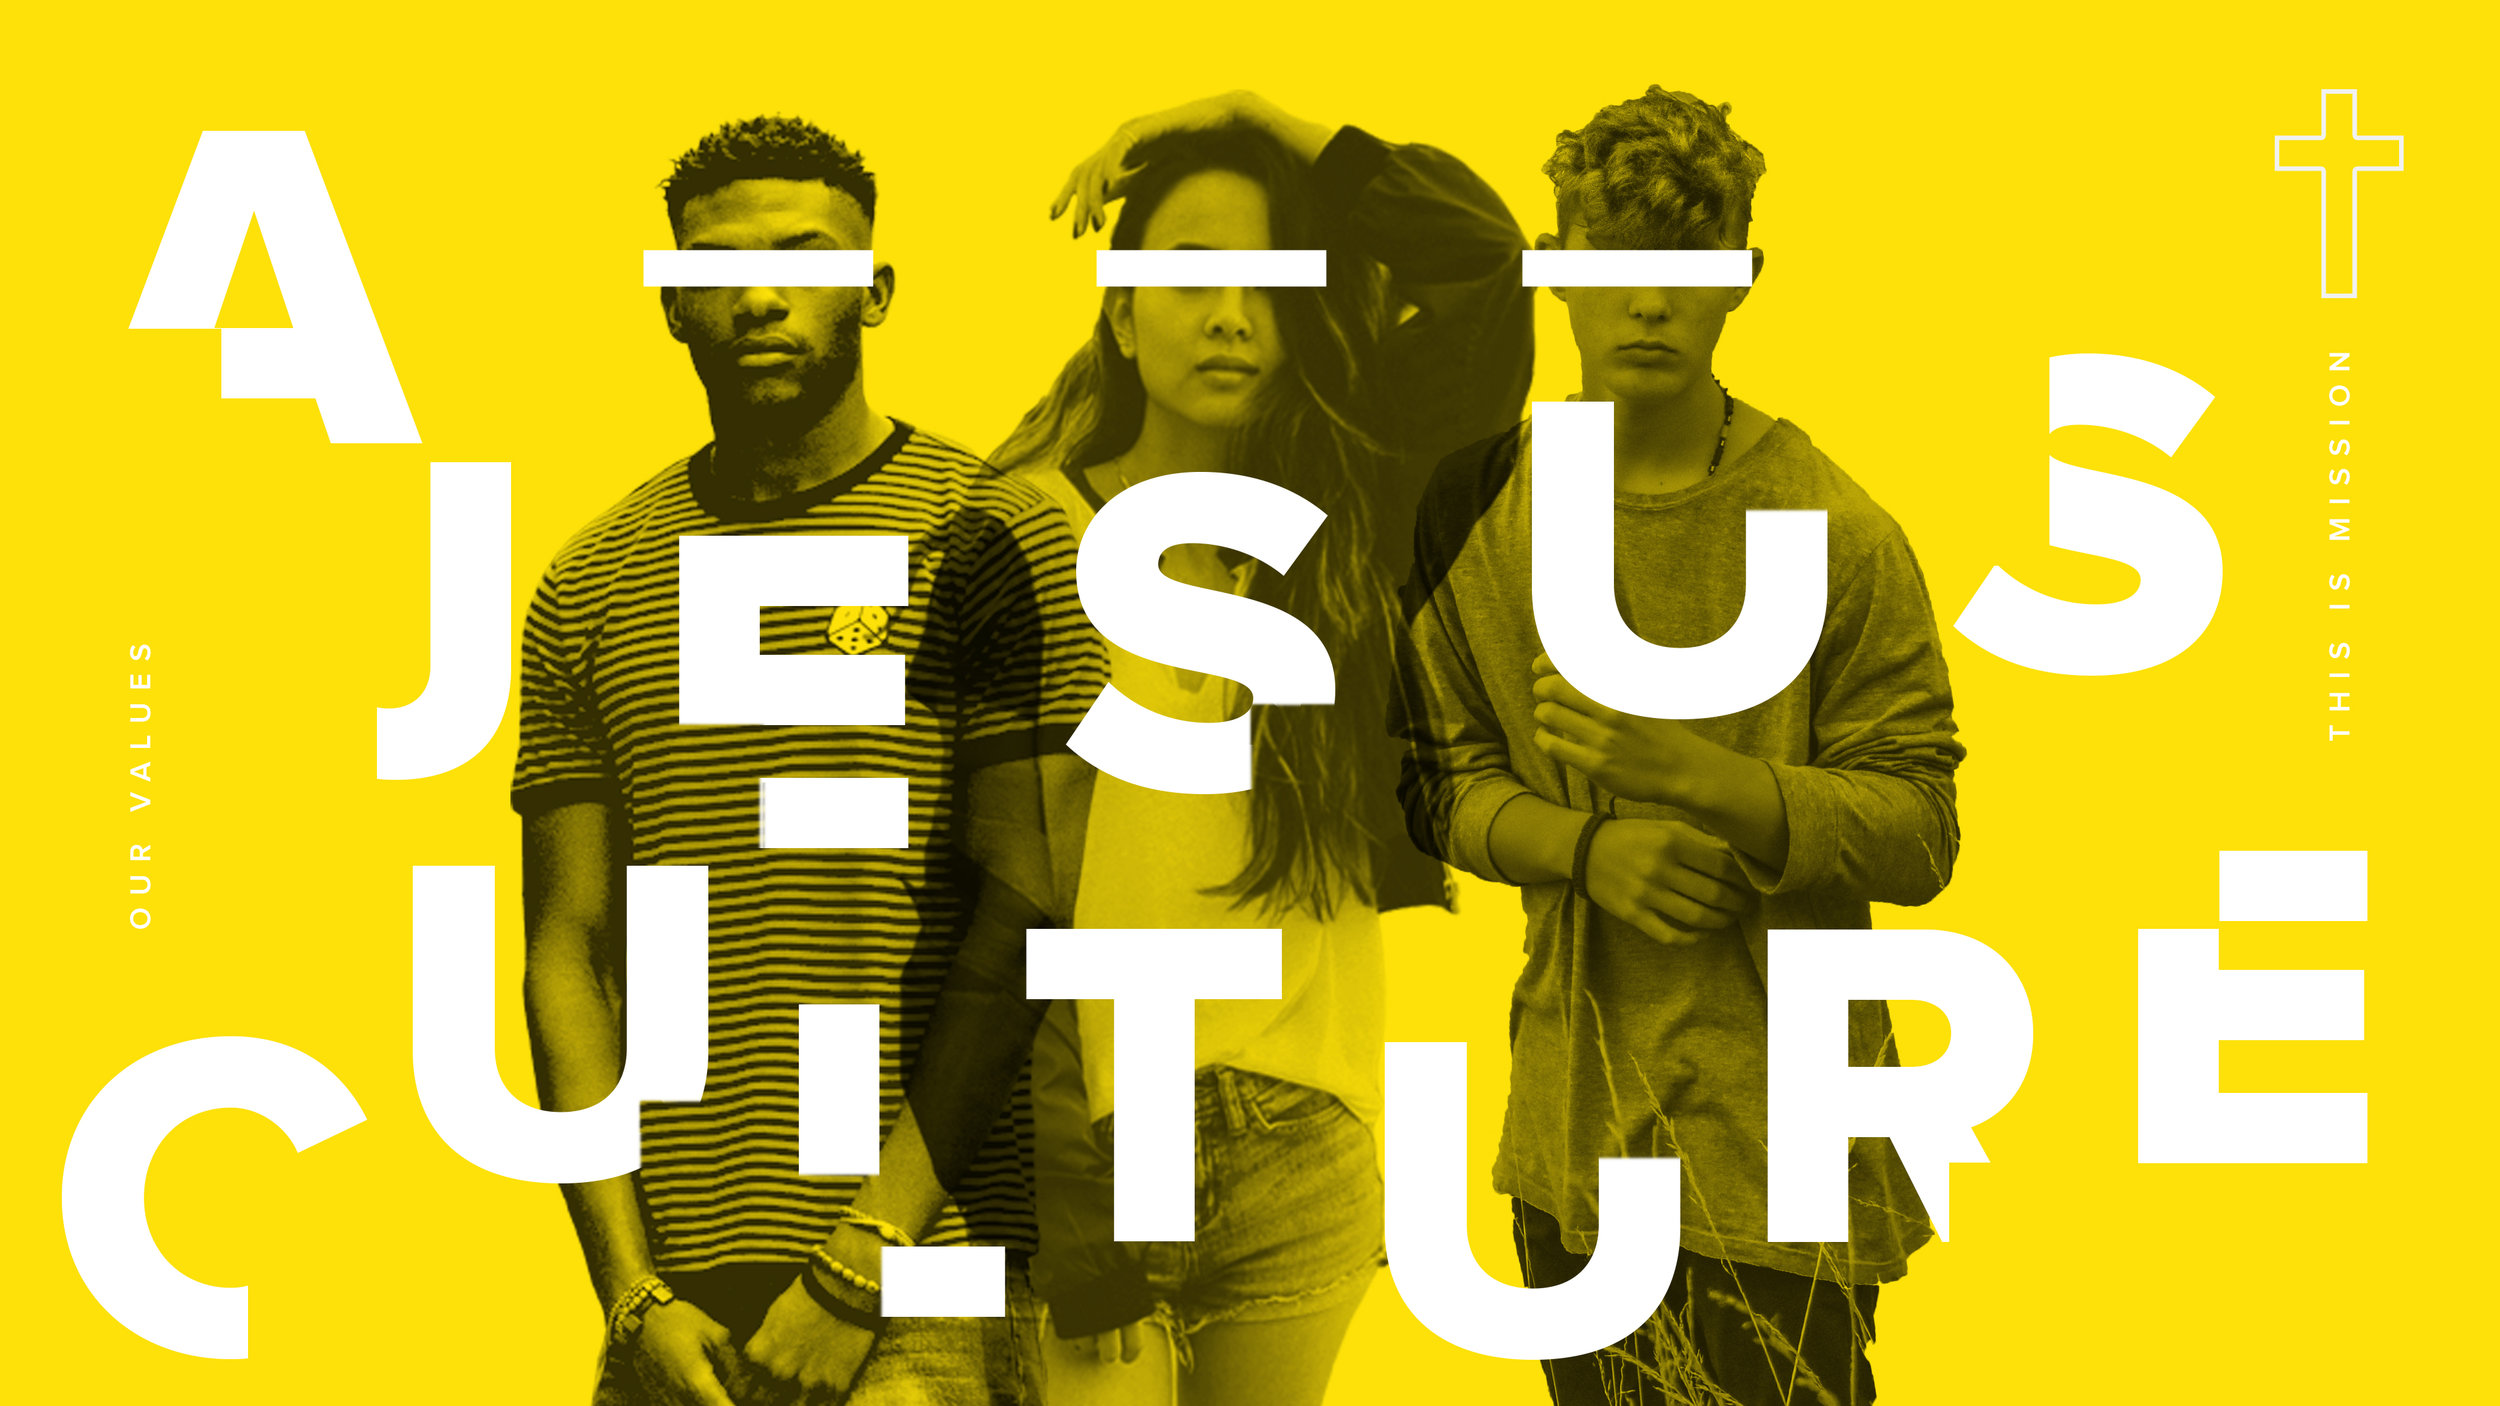 A_Jesus_Culture_title_yellow.jpg